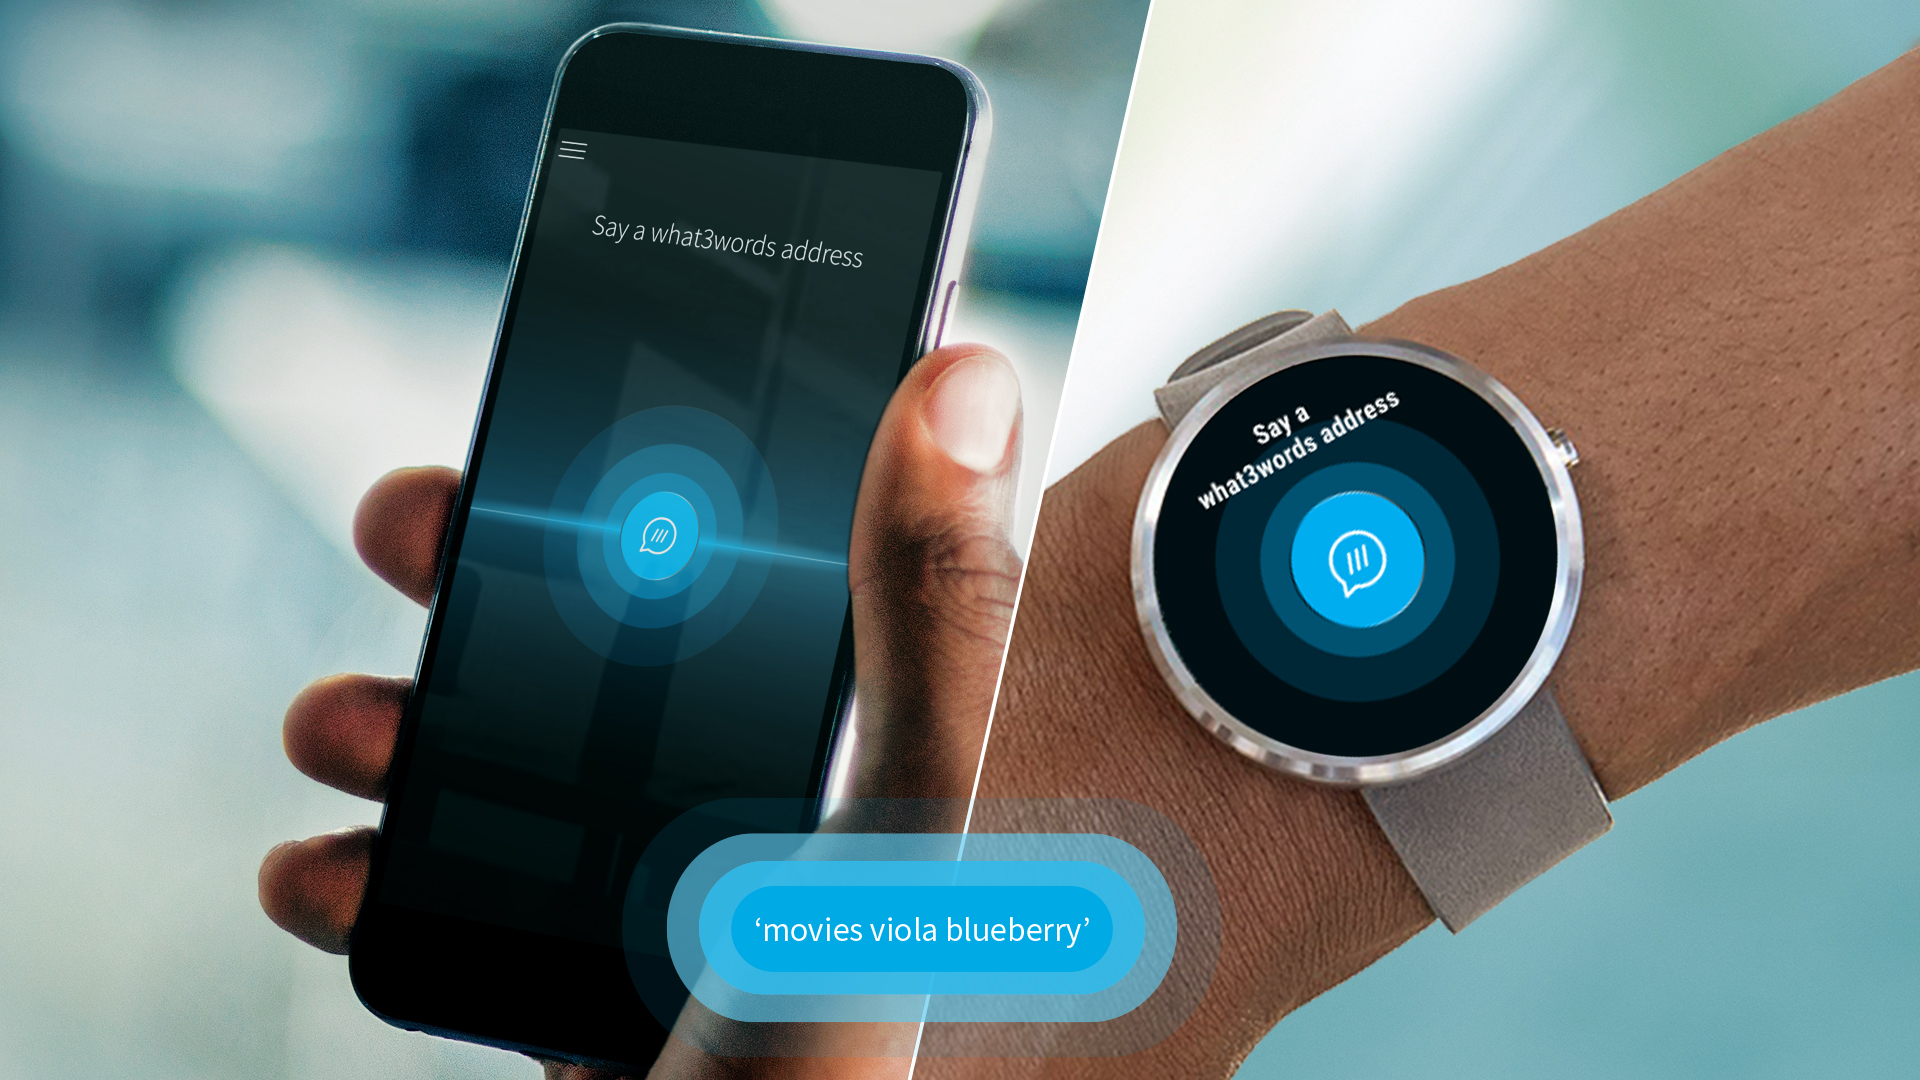 3WordAuto app displayed on mobile and wearable device